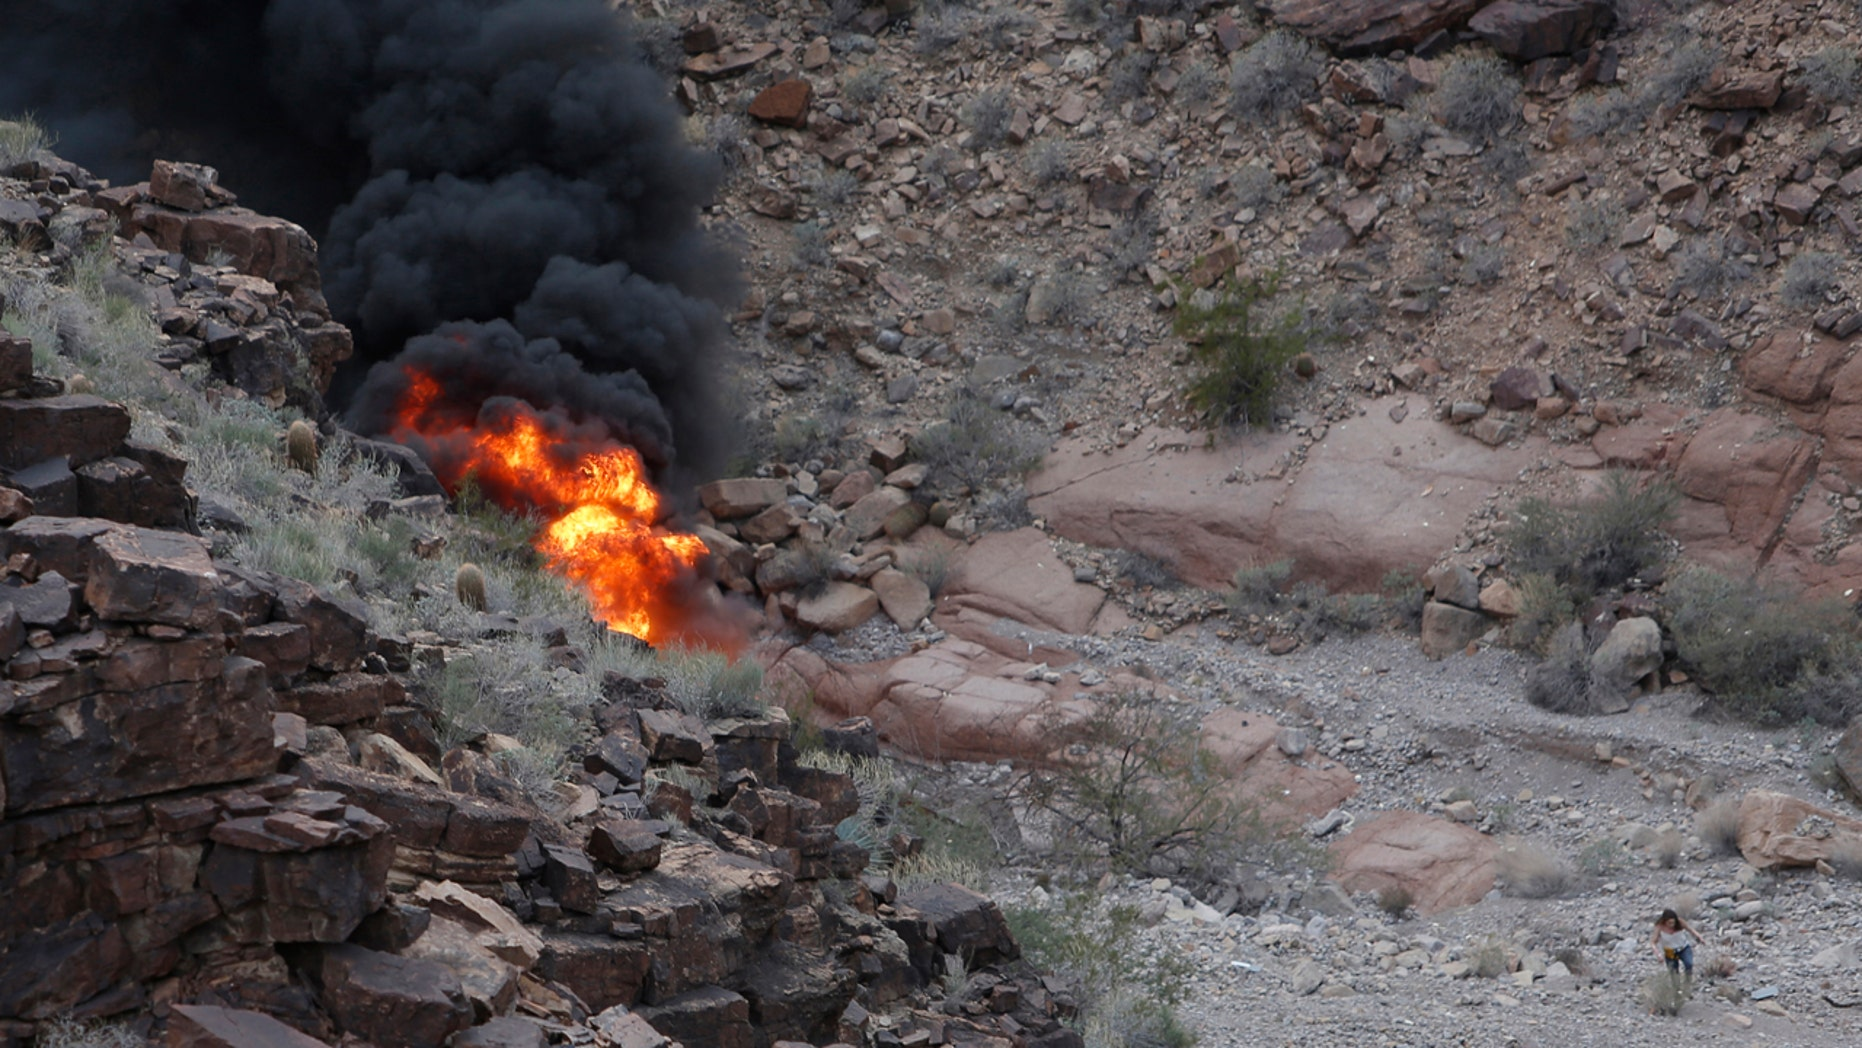 In this Saturday, Feb. 10, 2018, photo, a survivor, lower right, walks away from the scene of a deadly tour helicopter crash along the jagged rocks of the Grand Canyon, in Arizona. (Teddy Fujimoto via AP)